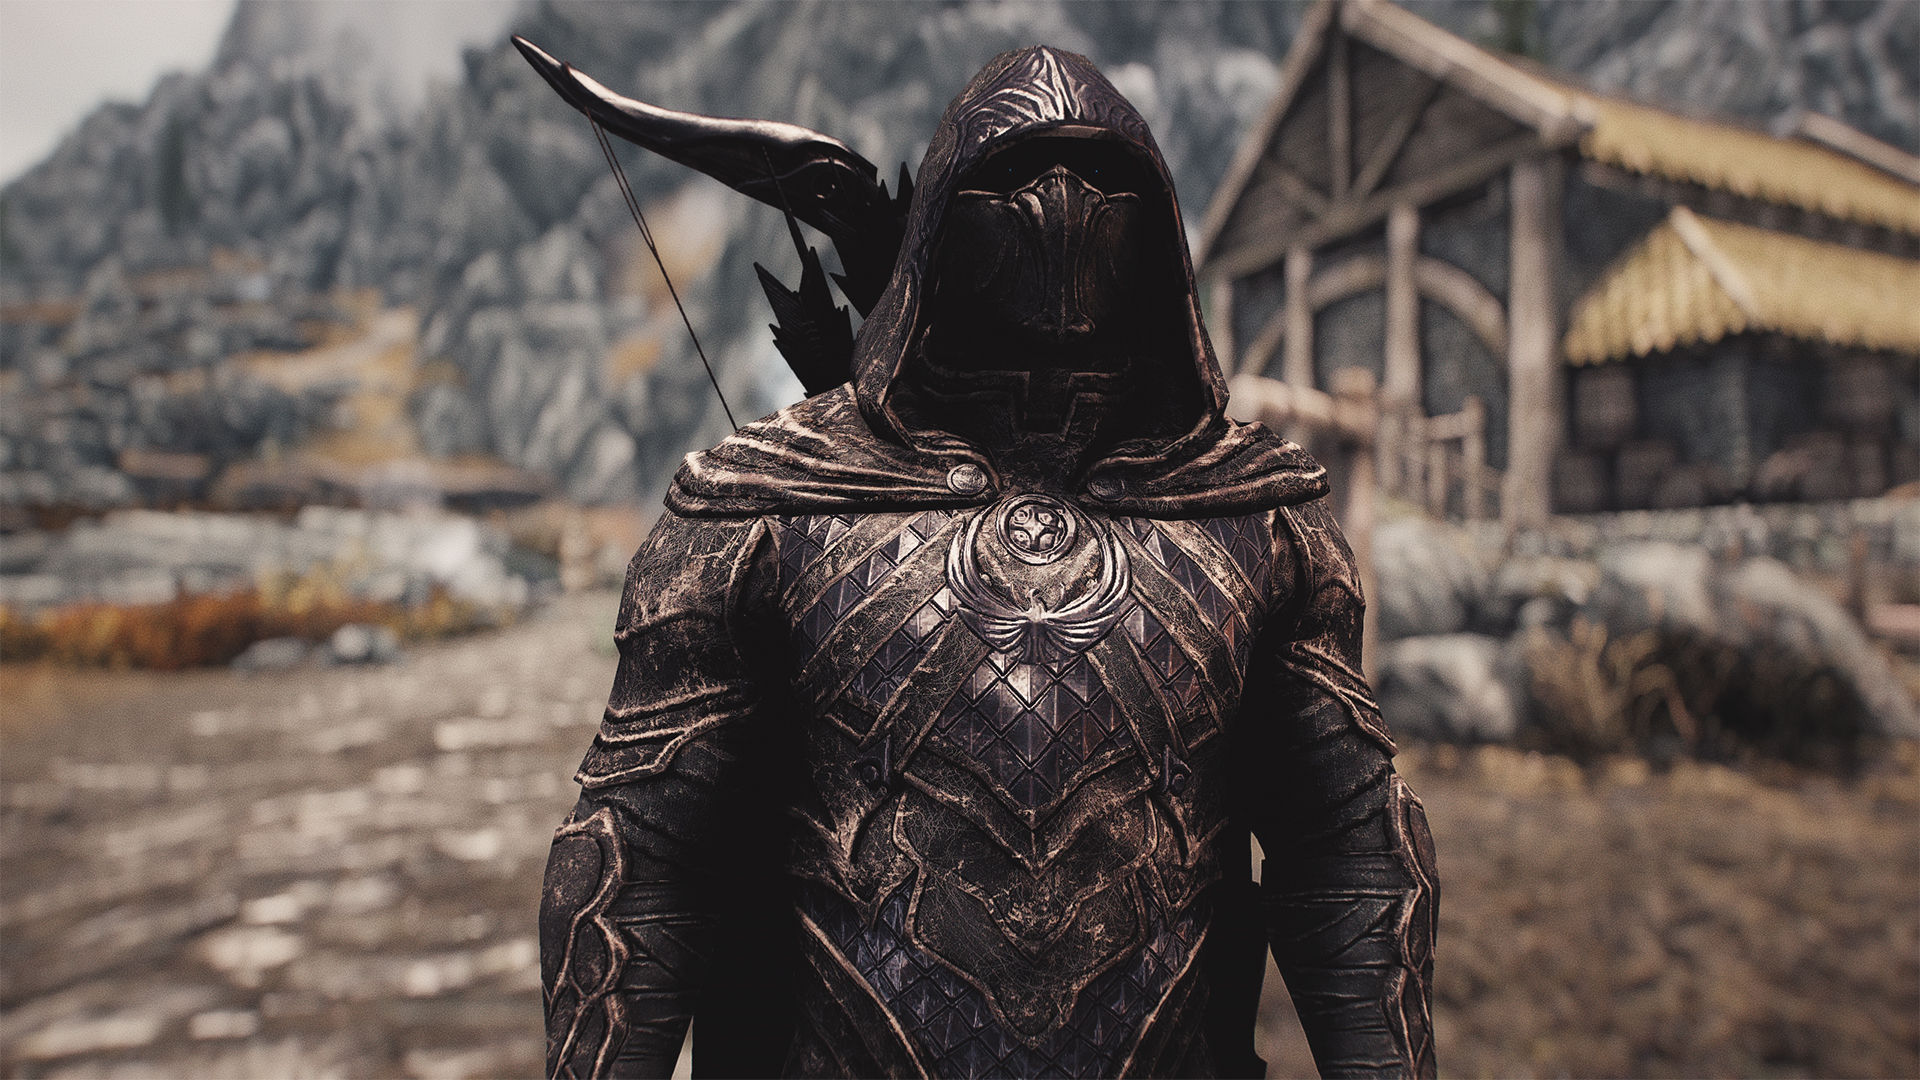 Skyrim Special Edition Nightingale 4k Hd Armor And Weapons Mod Makes